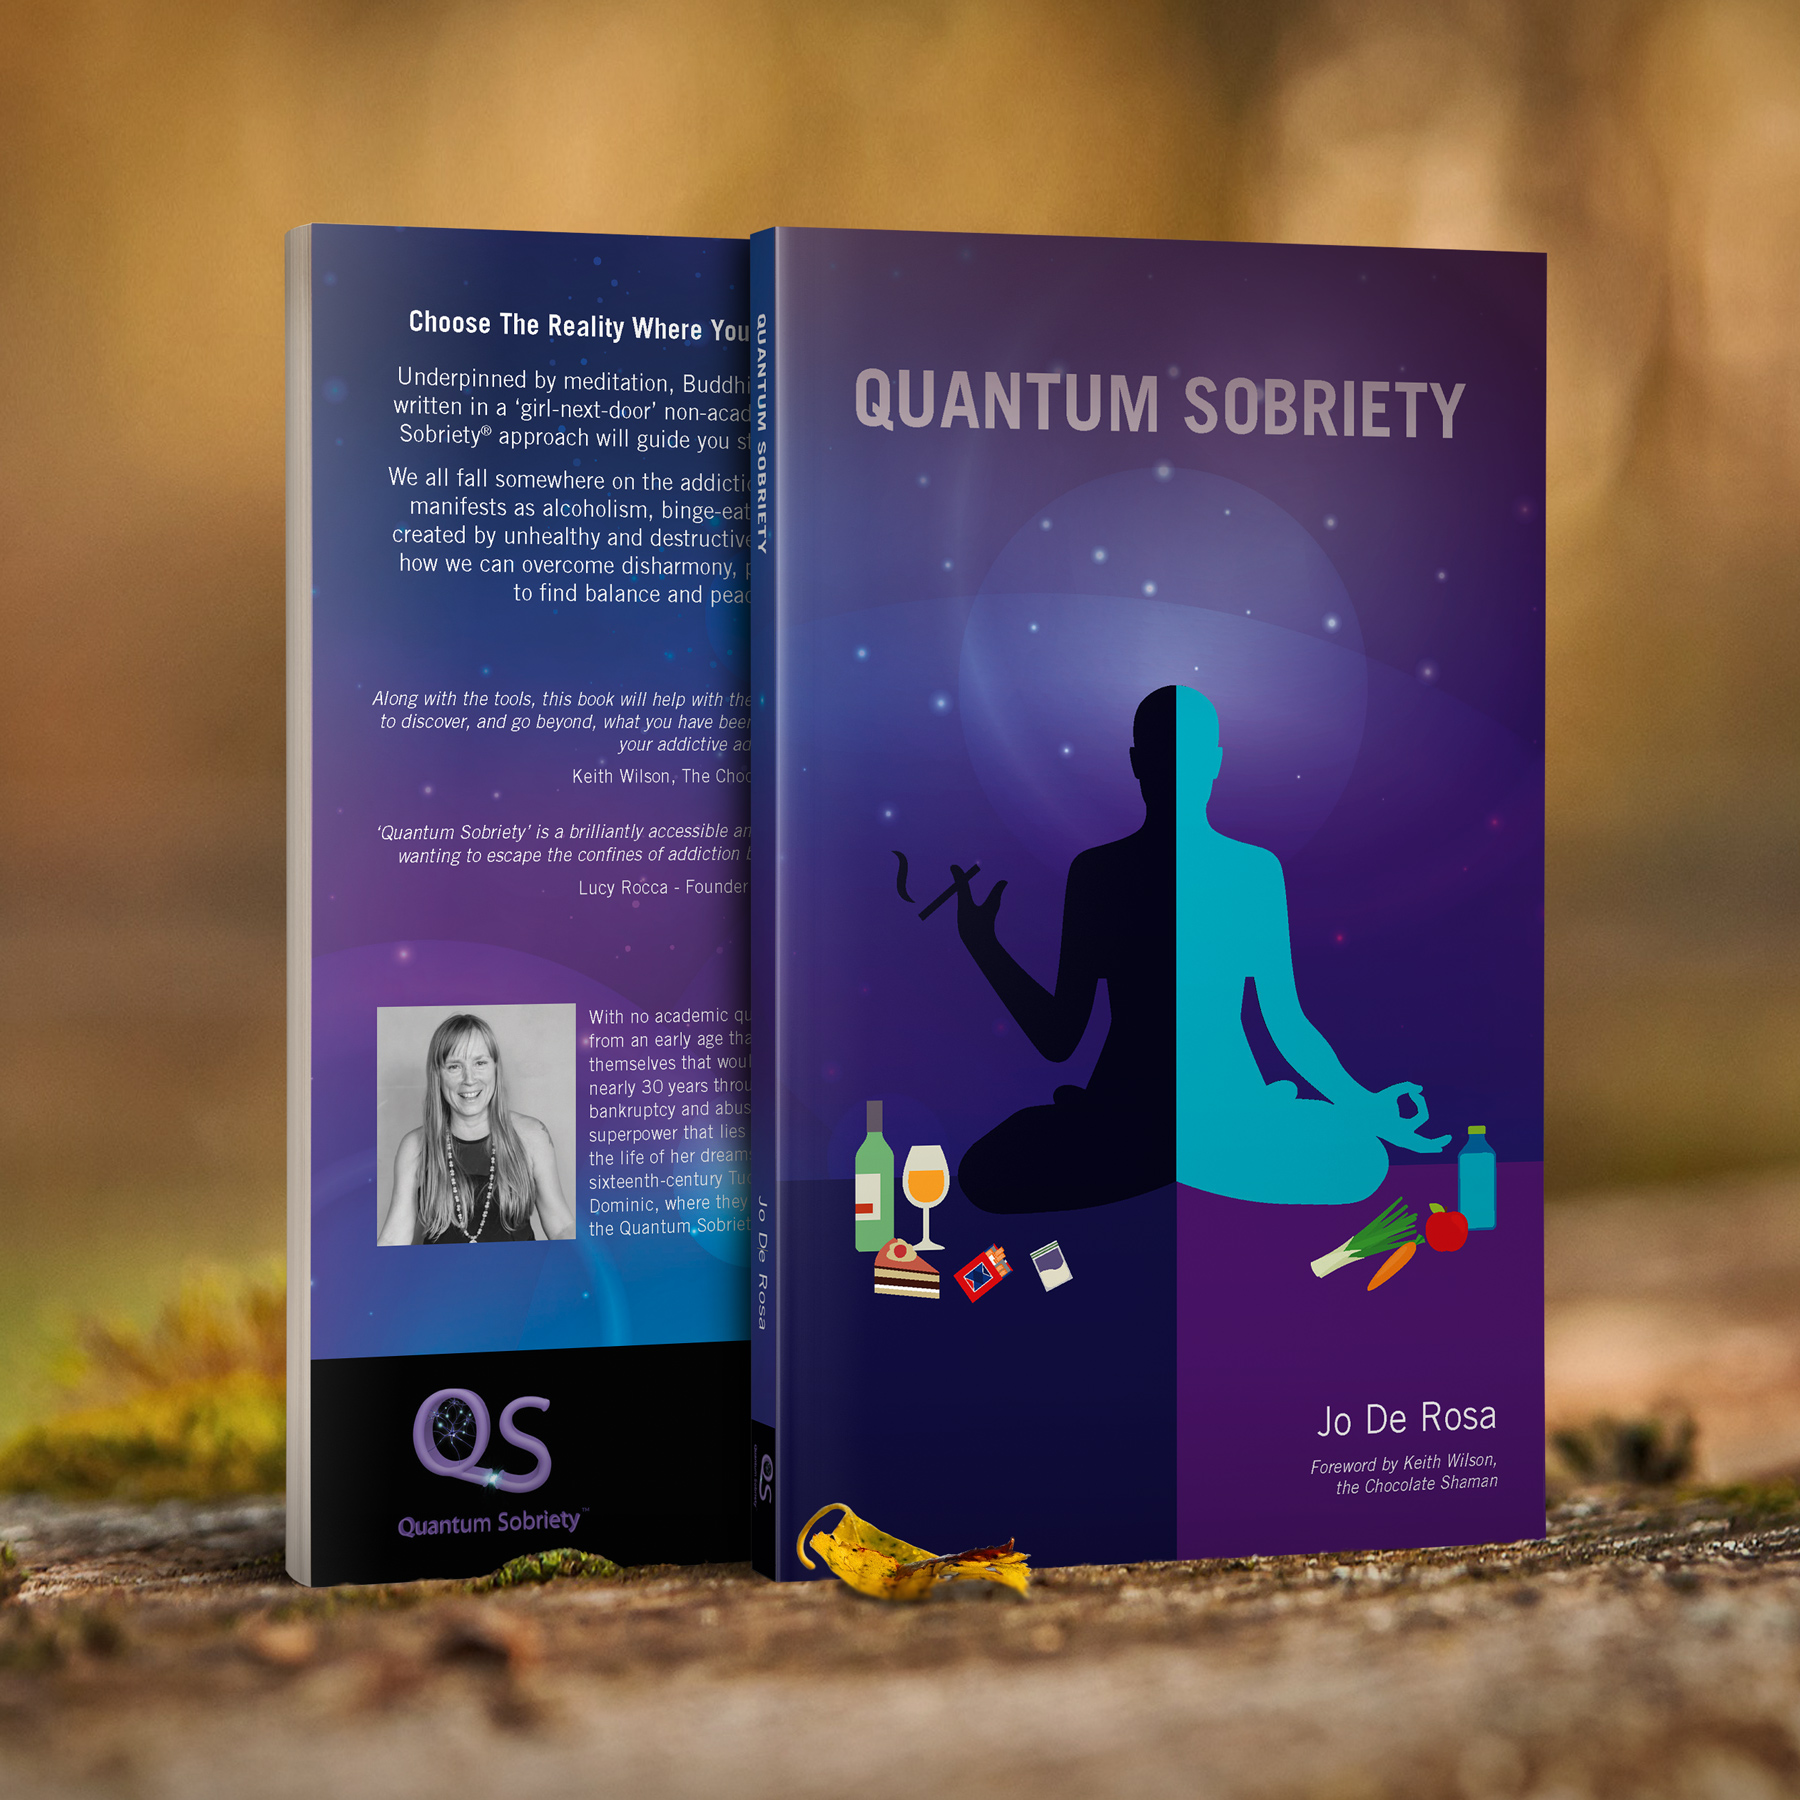 https://quantumsobriety.com/how-the-quantum-works/